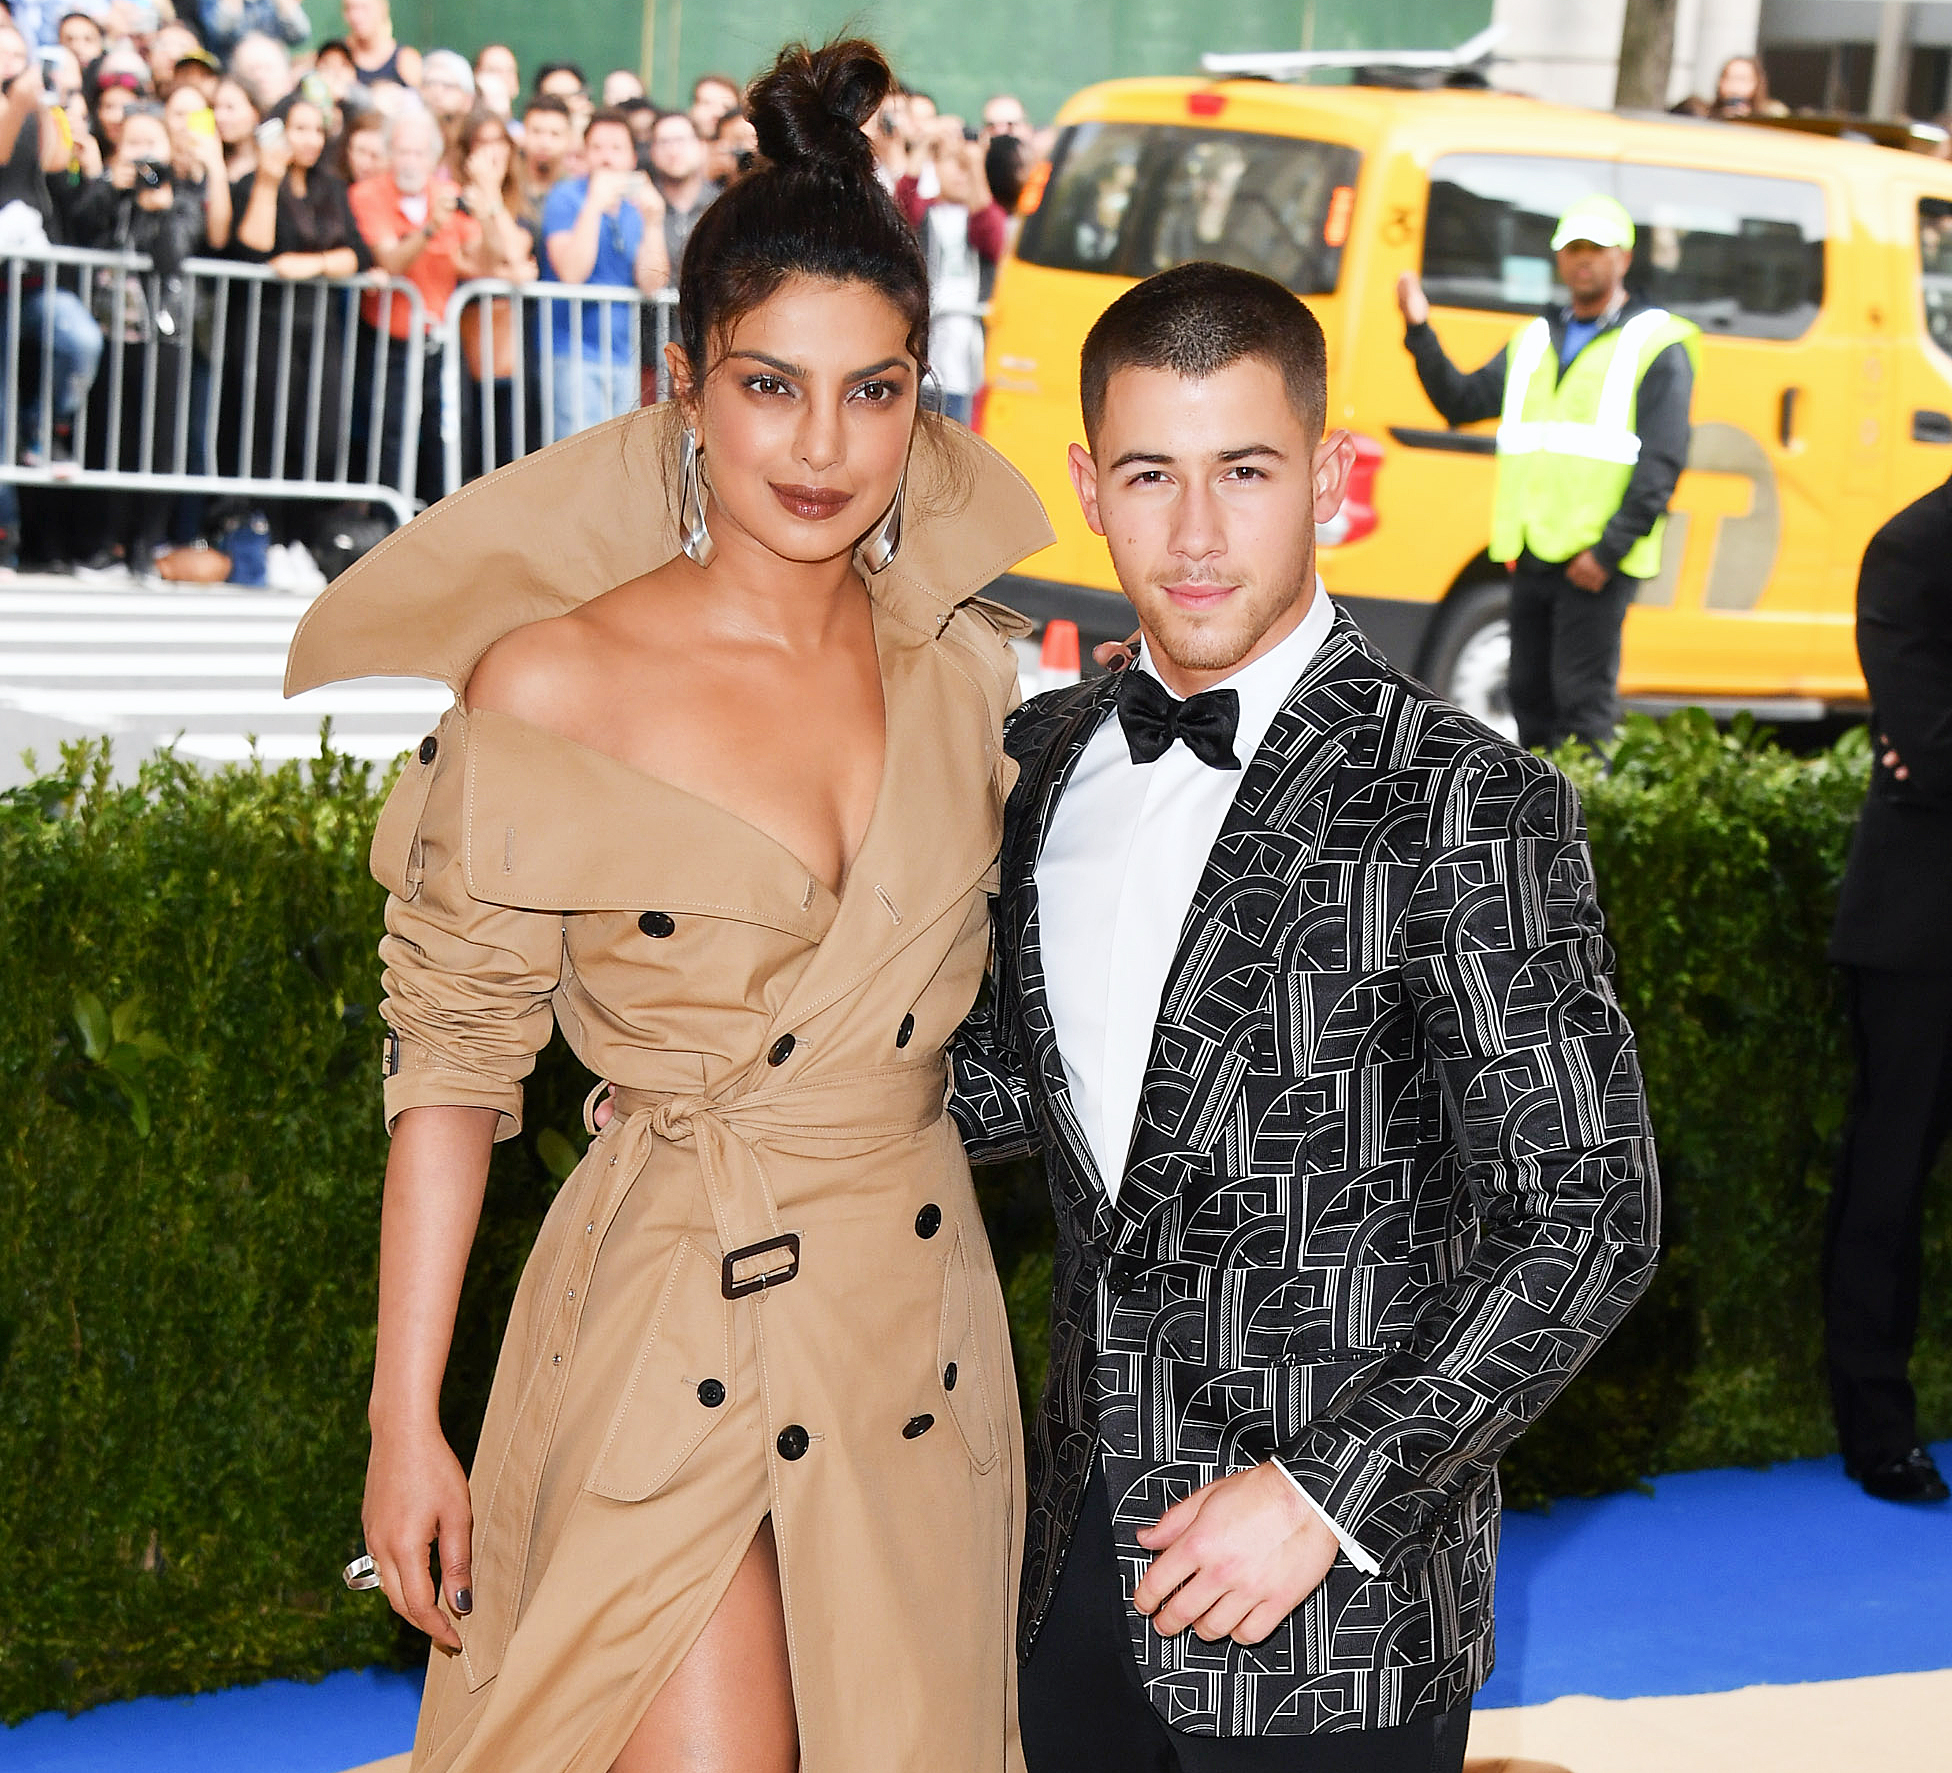 Are Priyanka Chopra and Nick Jonas in a relationship?